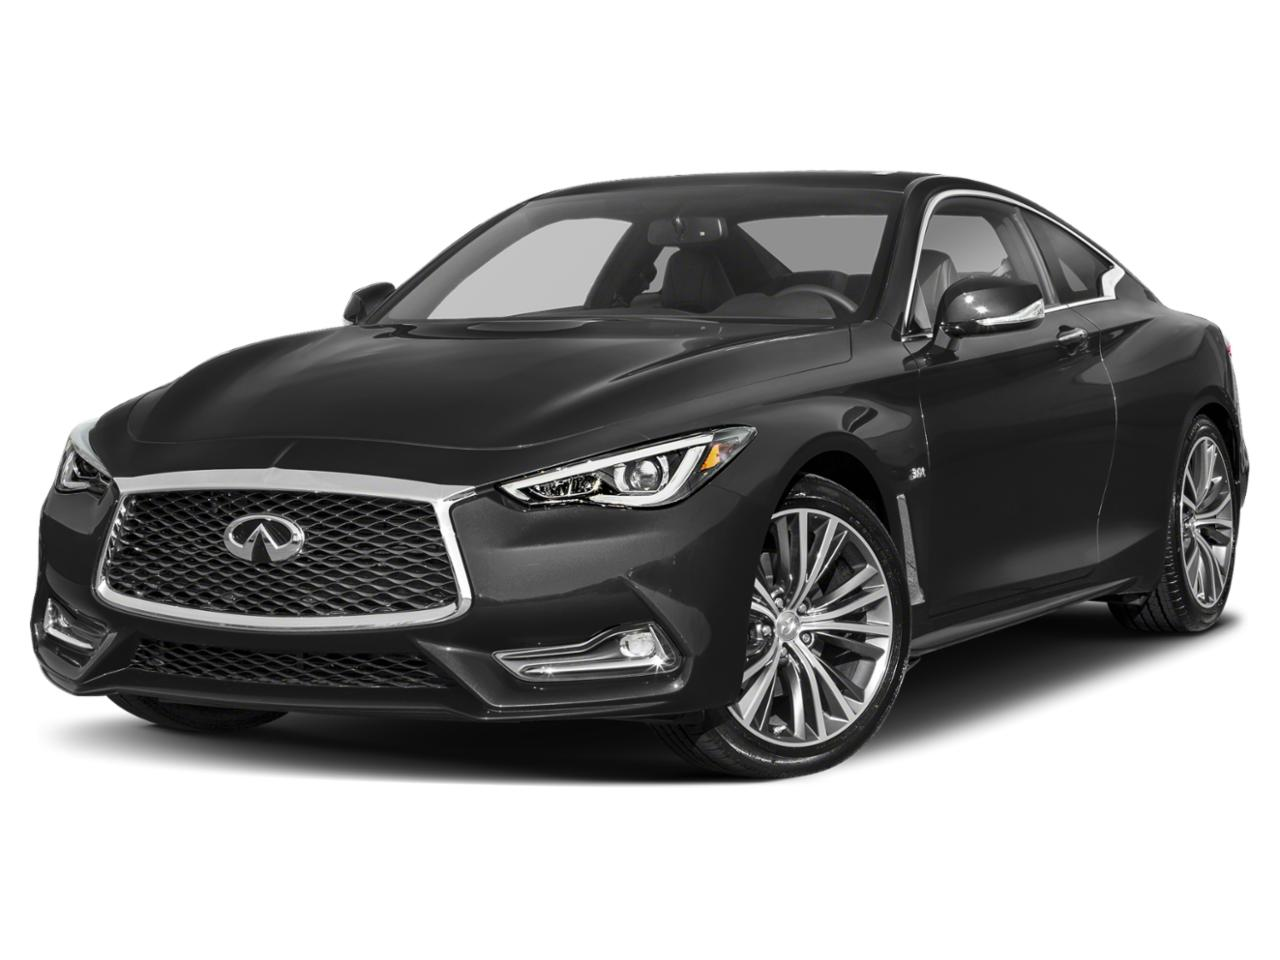 2020 INFINITI Q60 Vehicle Photo in Grapevine, TX 76051